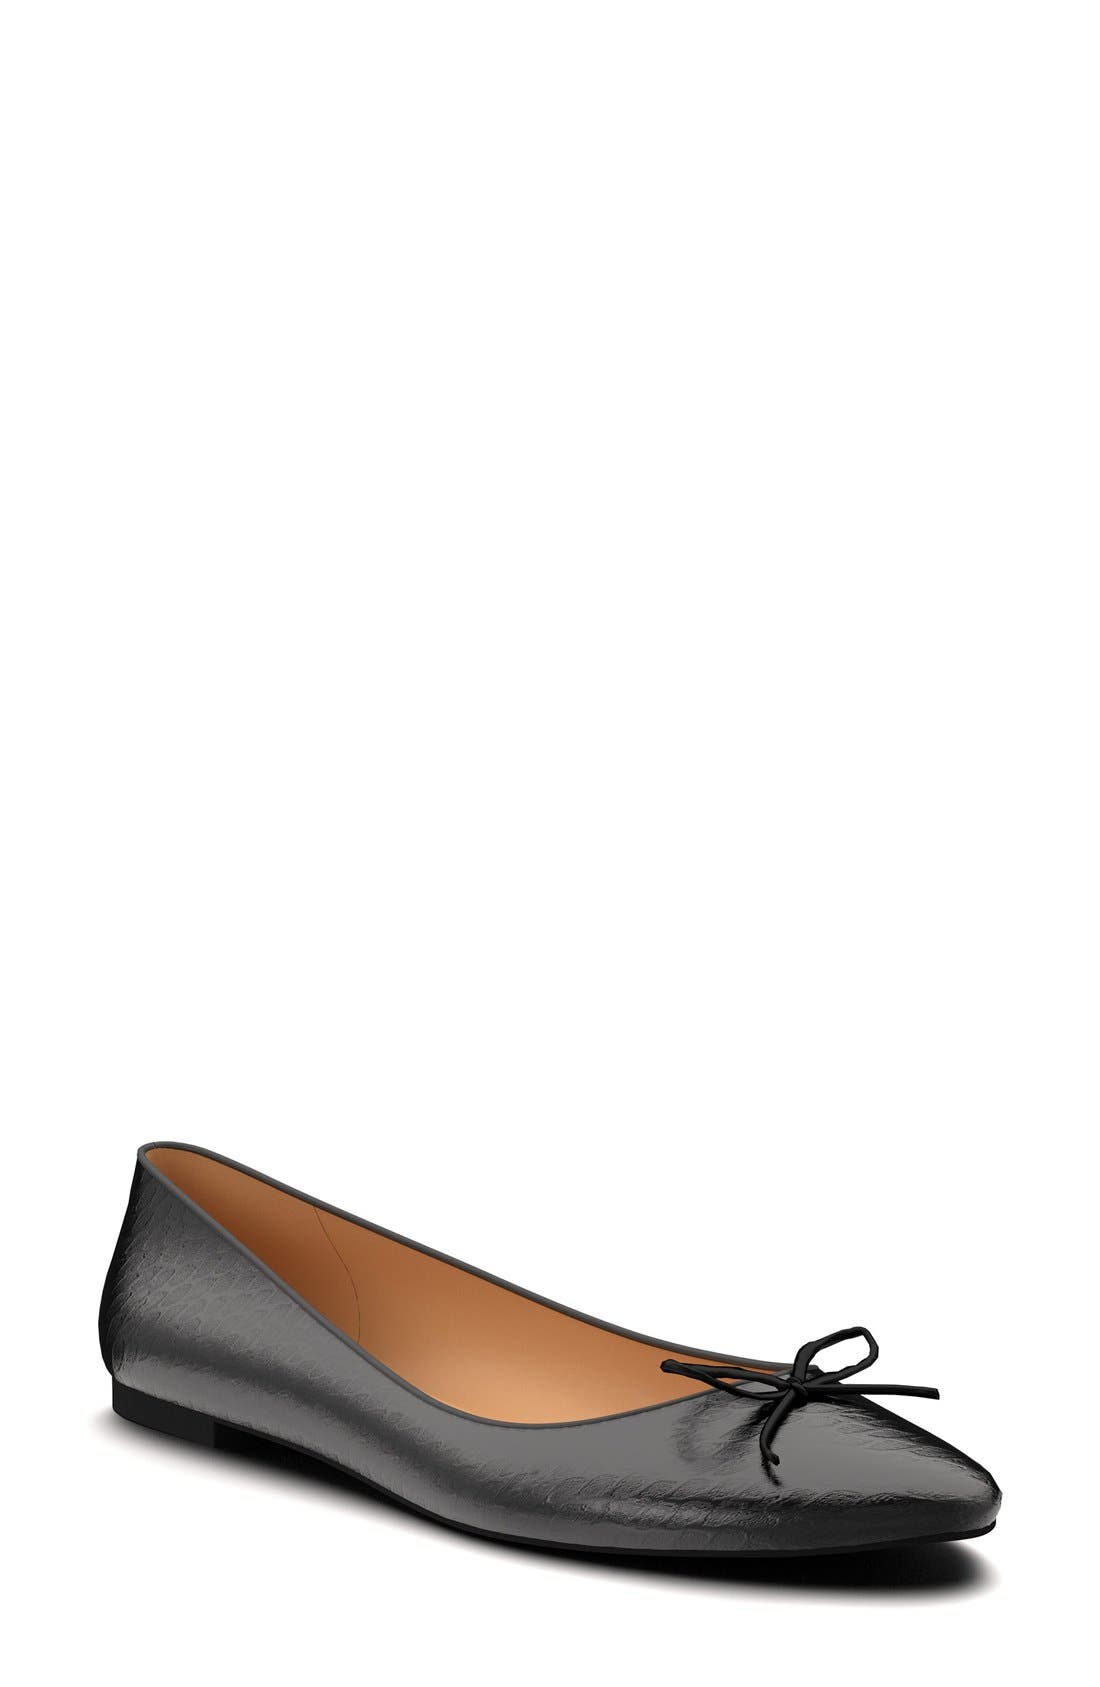 Alternate Image 1 Selected - Shoes of Prey Ballet Flat (Women)